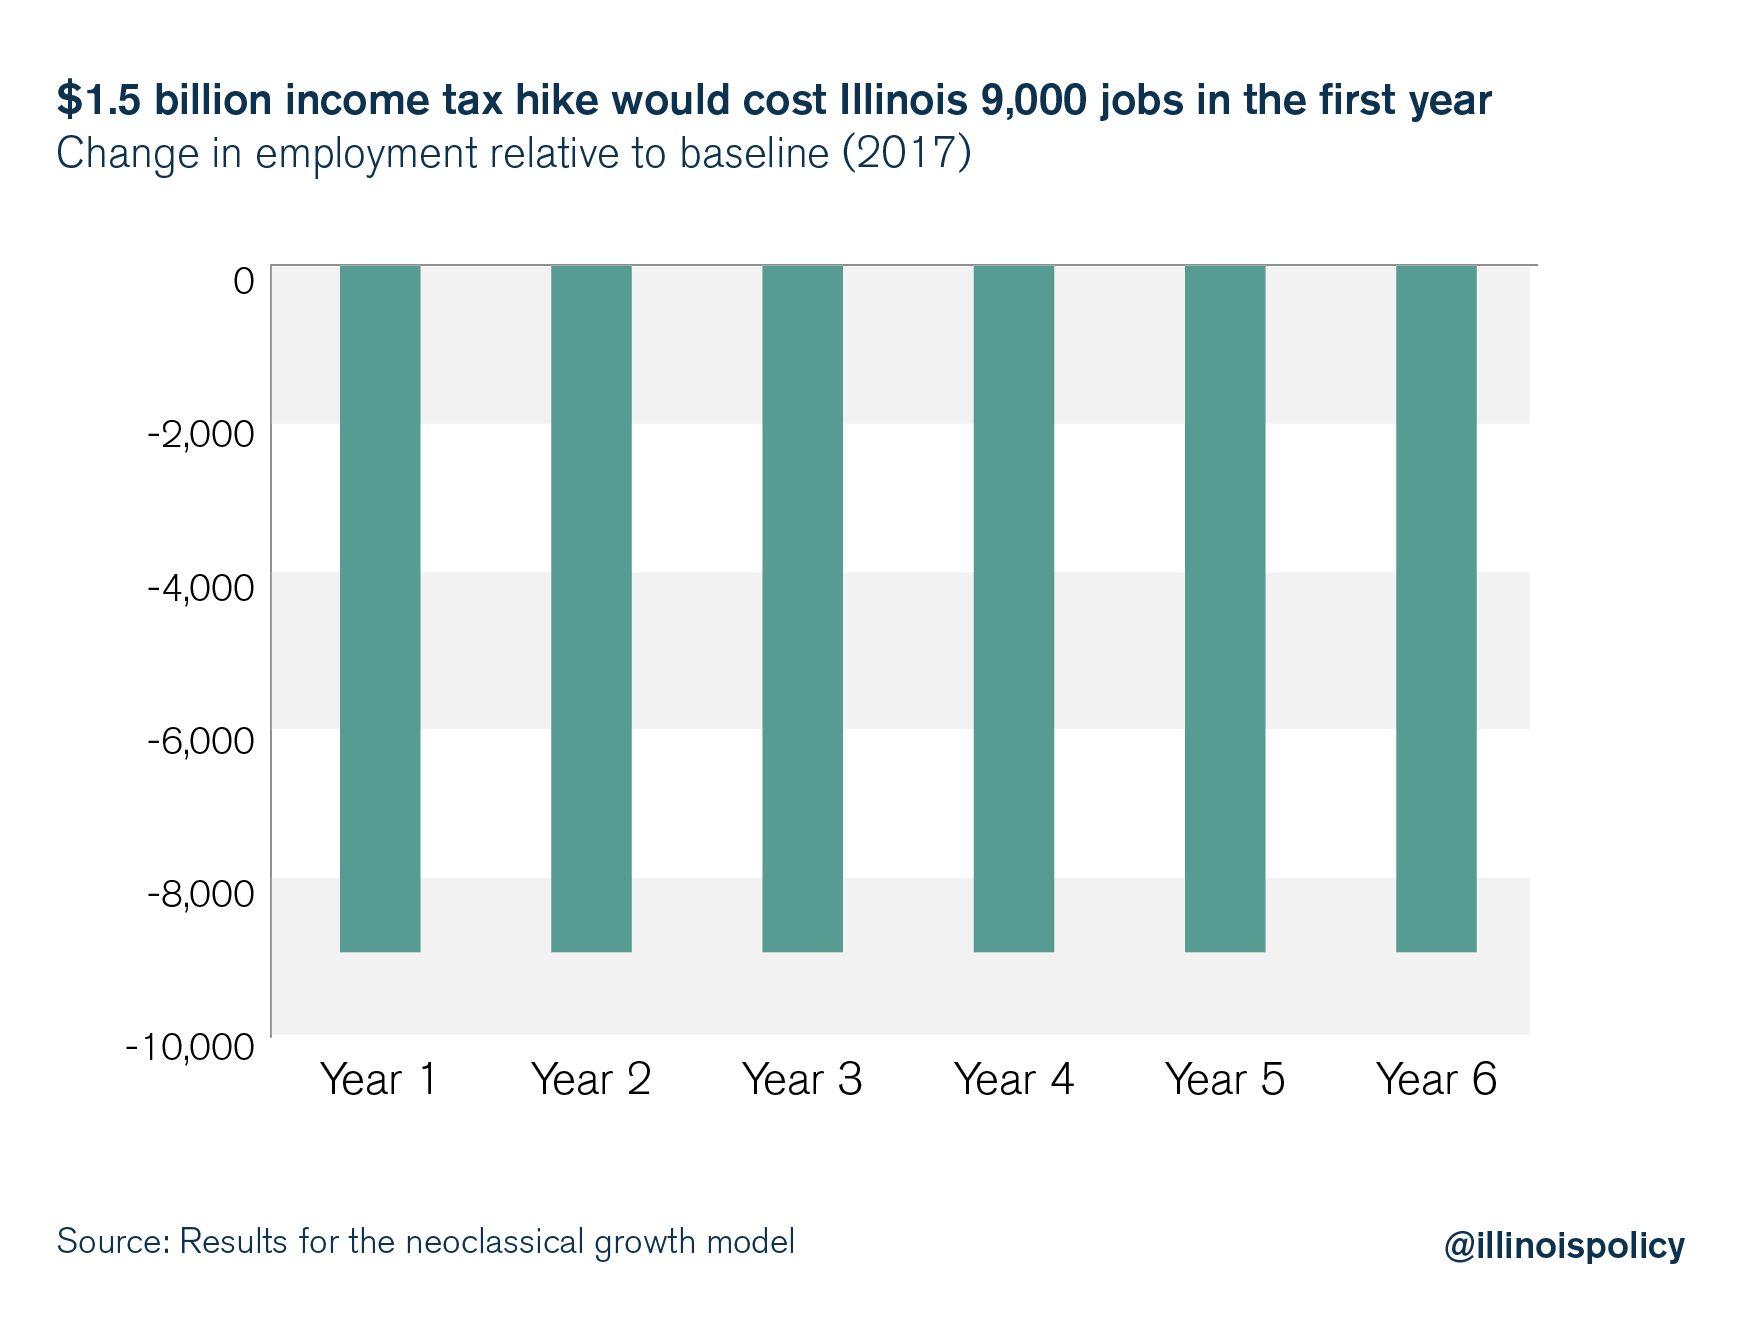 $1.5 billion income tax hike would cost Illinois 9,000 jobs in the first year